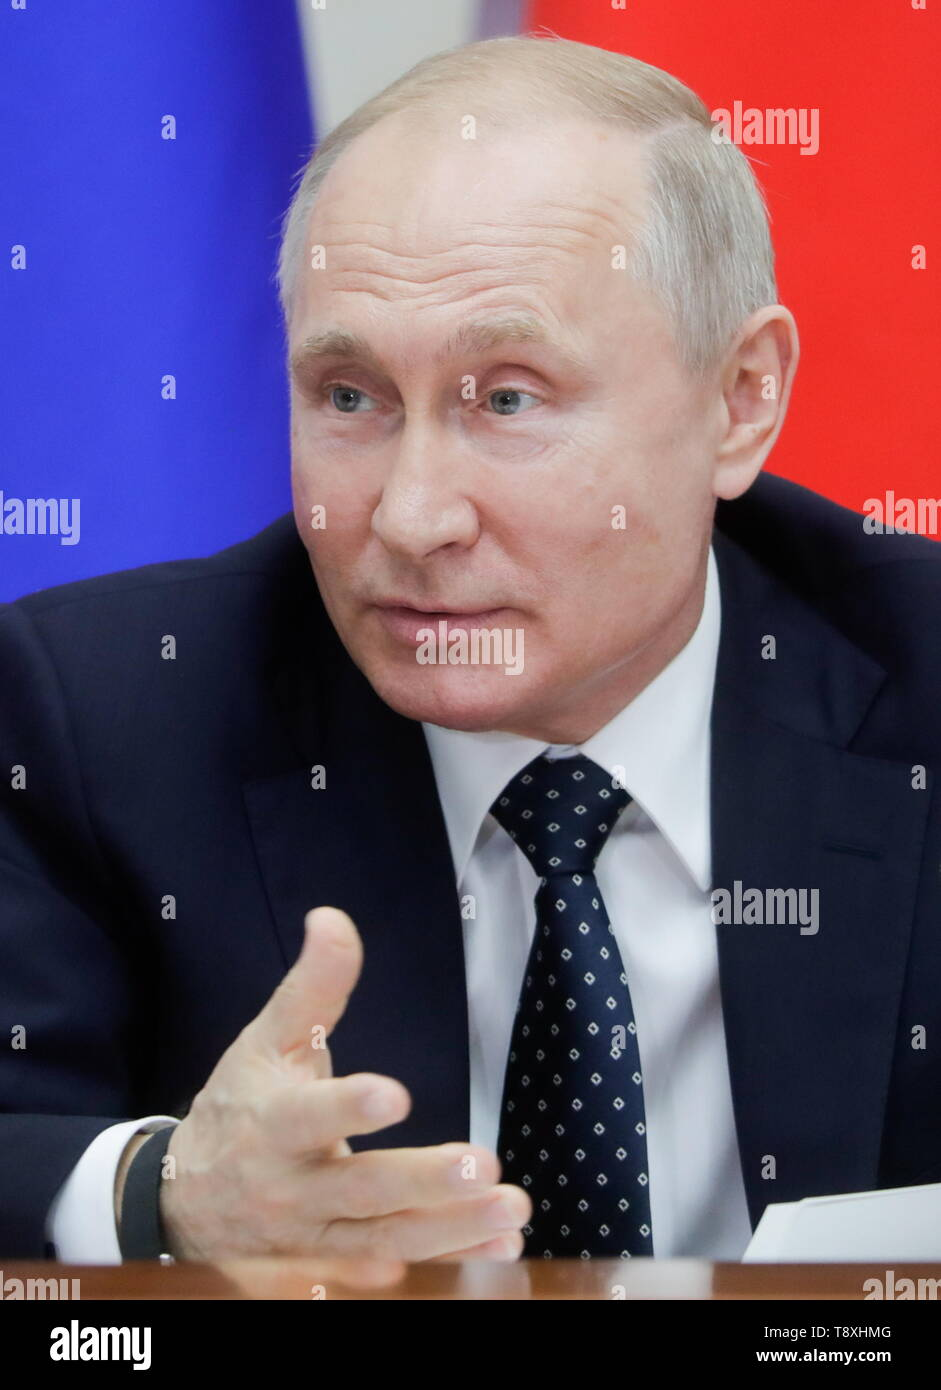 Sochi, Russia. 15th May, 2019. SOCHI, RUSSIA - MAY 15, 2019: Russia's President Vladimir Putin attends the inaugural meeting of the Sochi Dialogue Forum. Mikhail Metzel/TASS Credit: ITAR-TASS News Agency/Alamy Live News Stock Photo